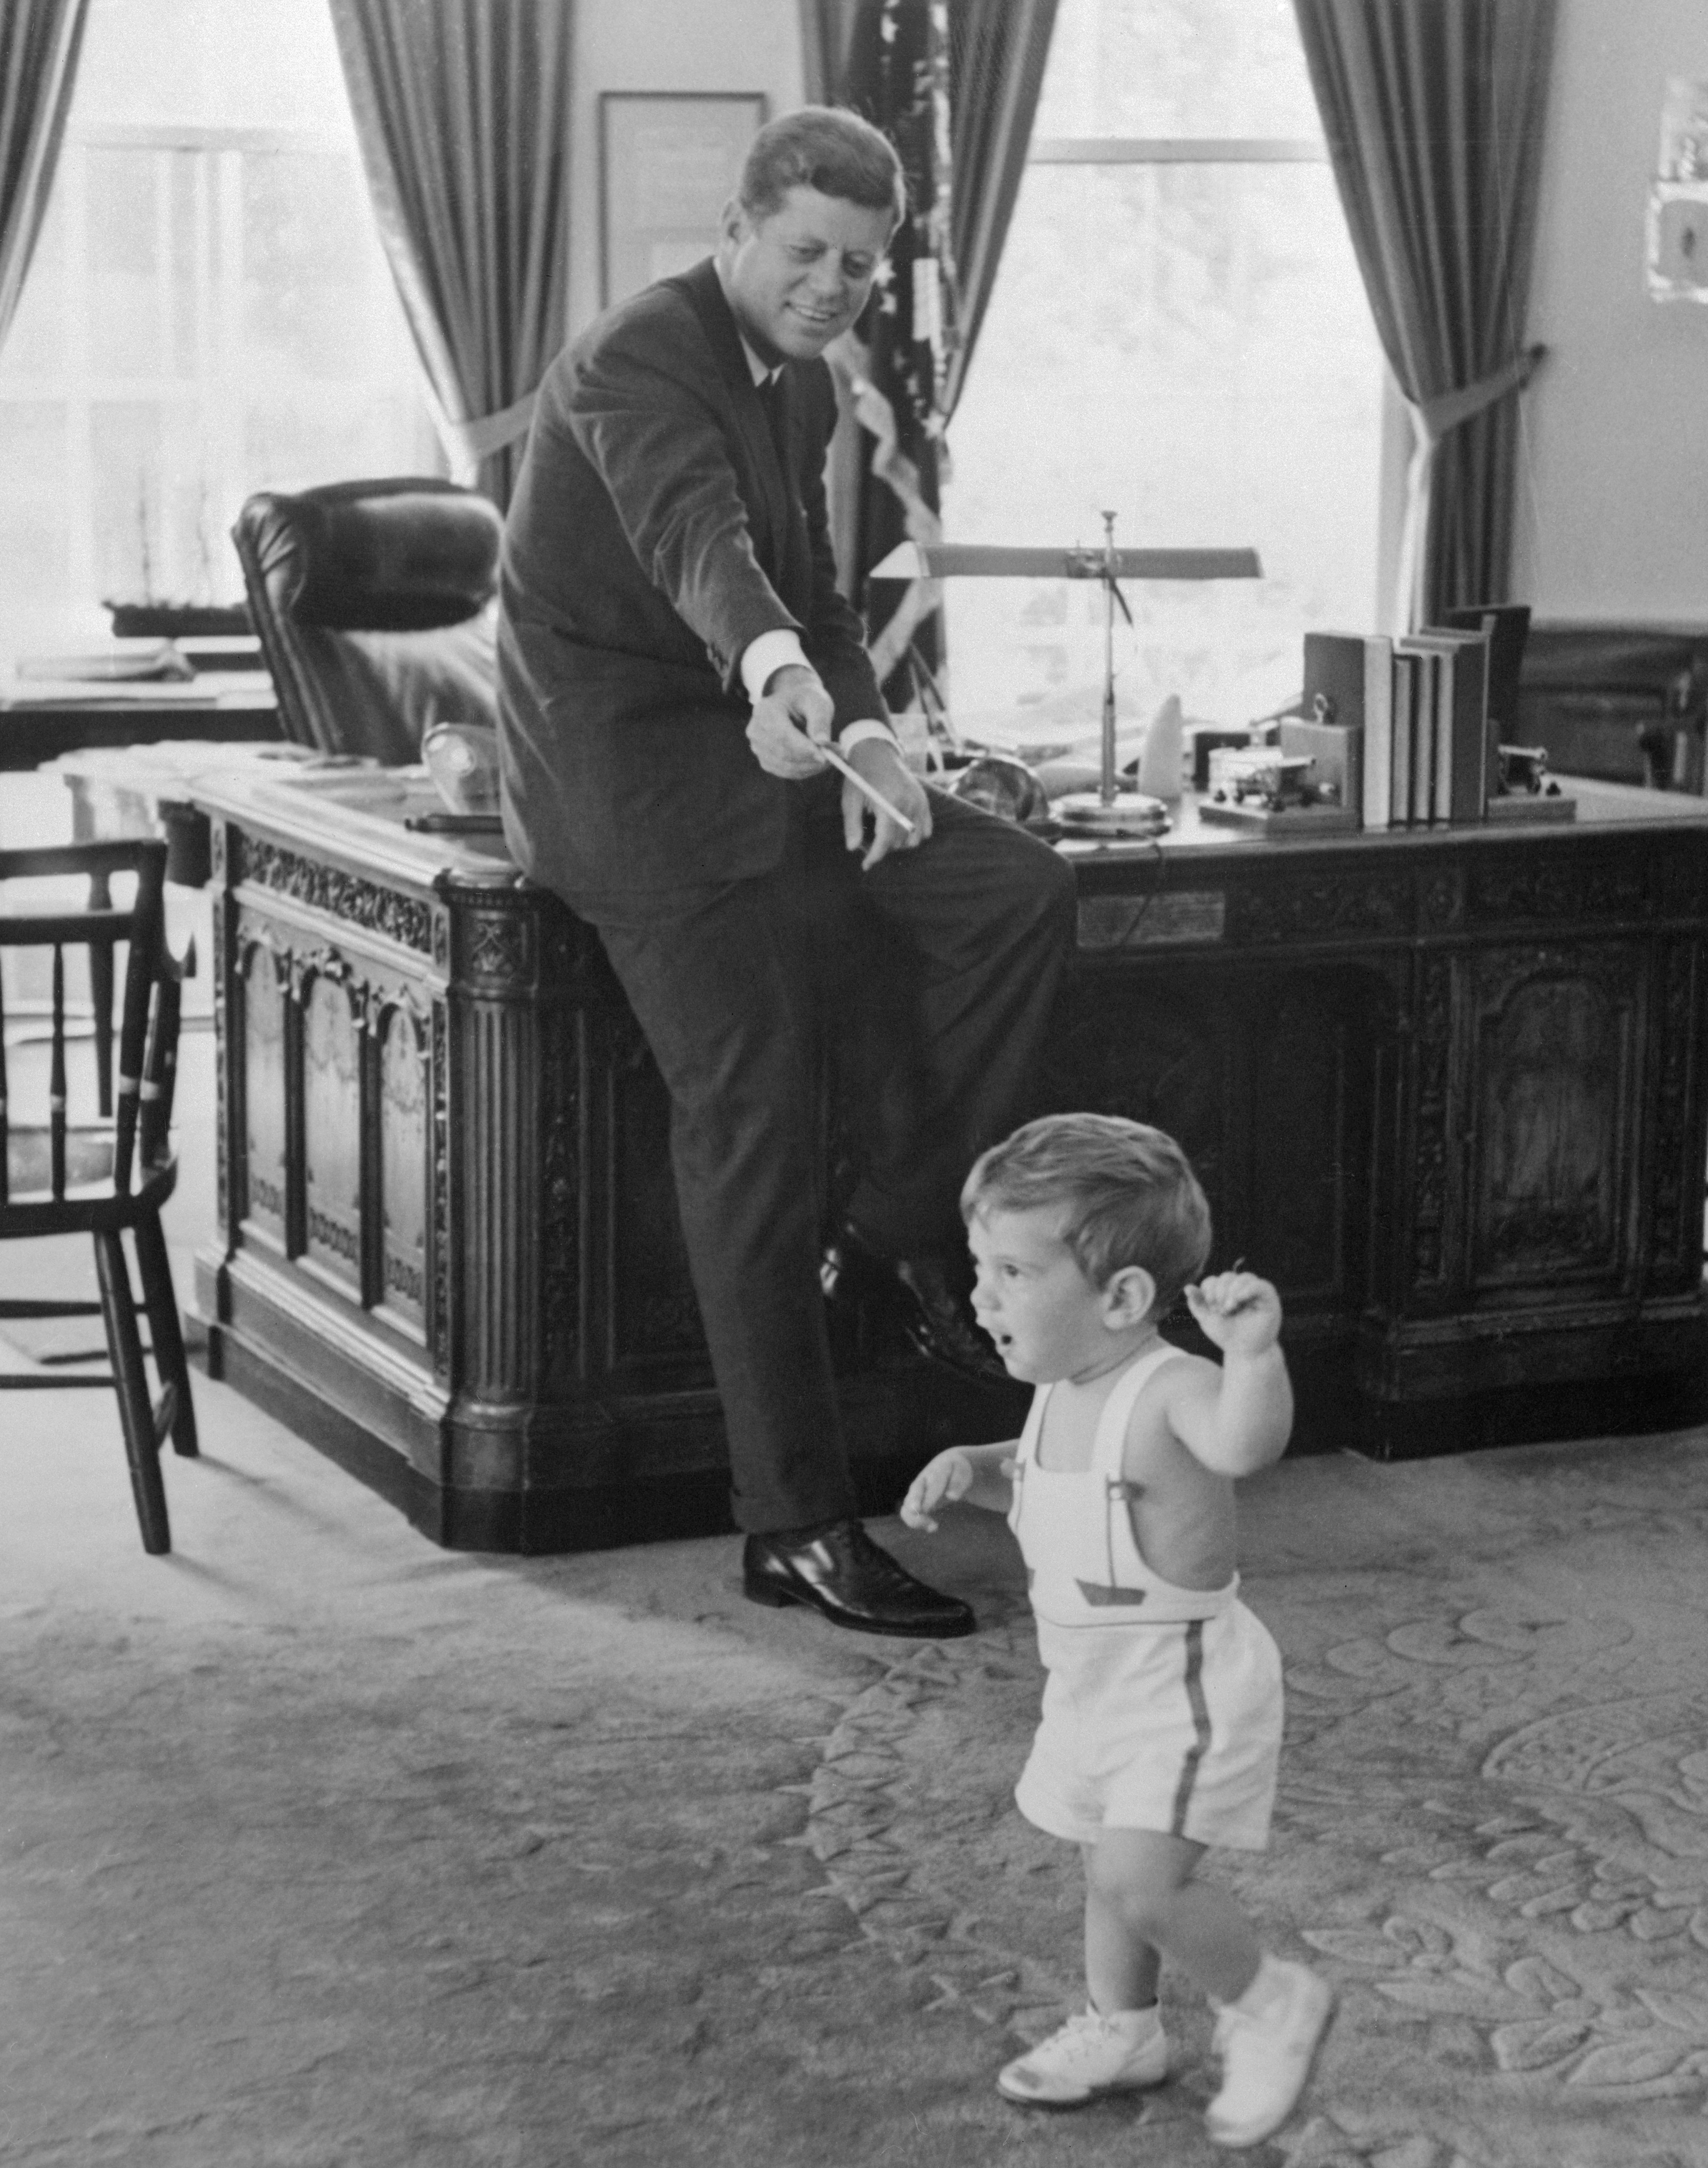 John F. Kennedy with 18 Month Old Son John Jr.